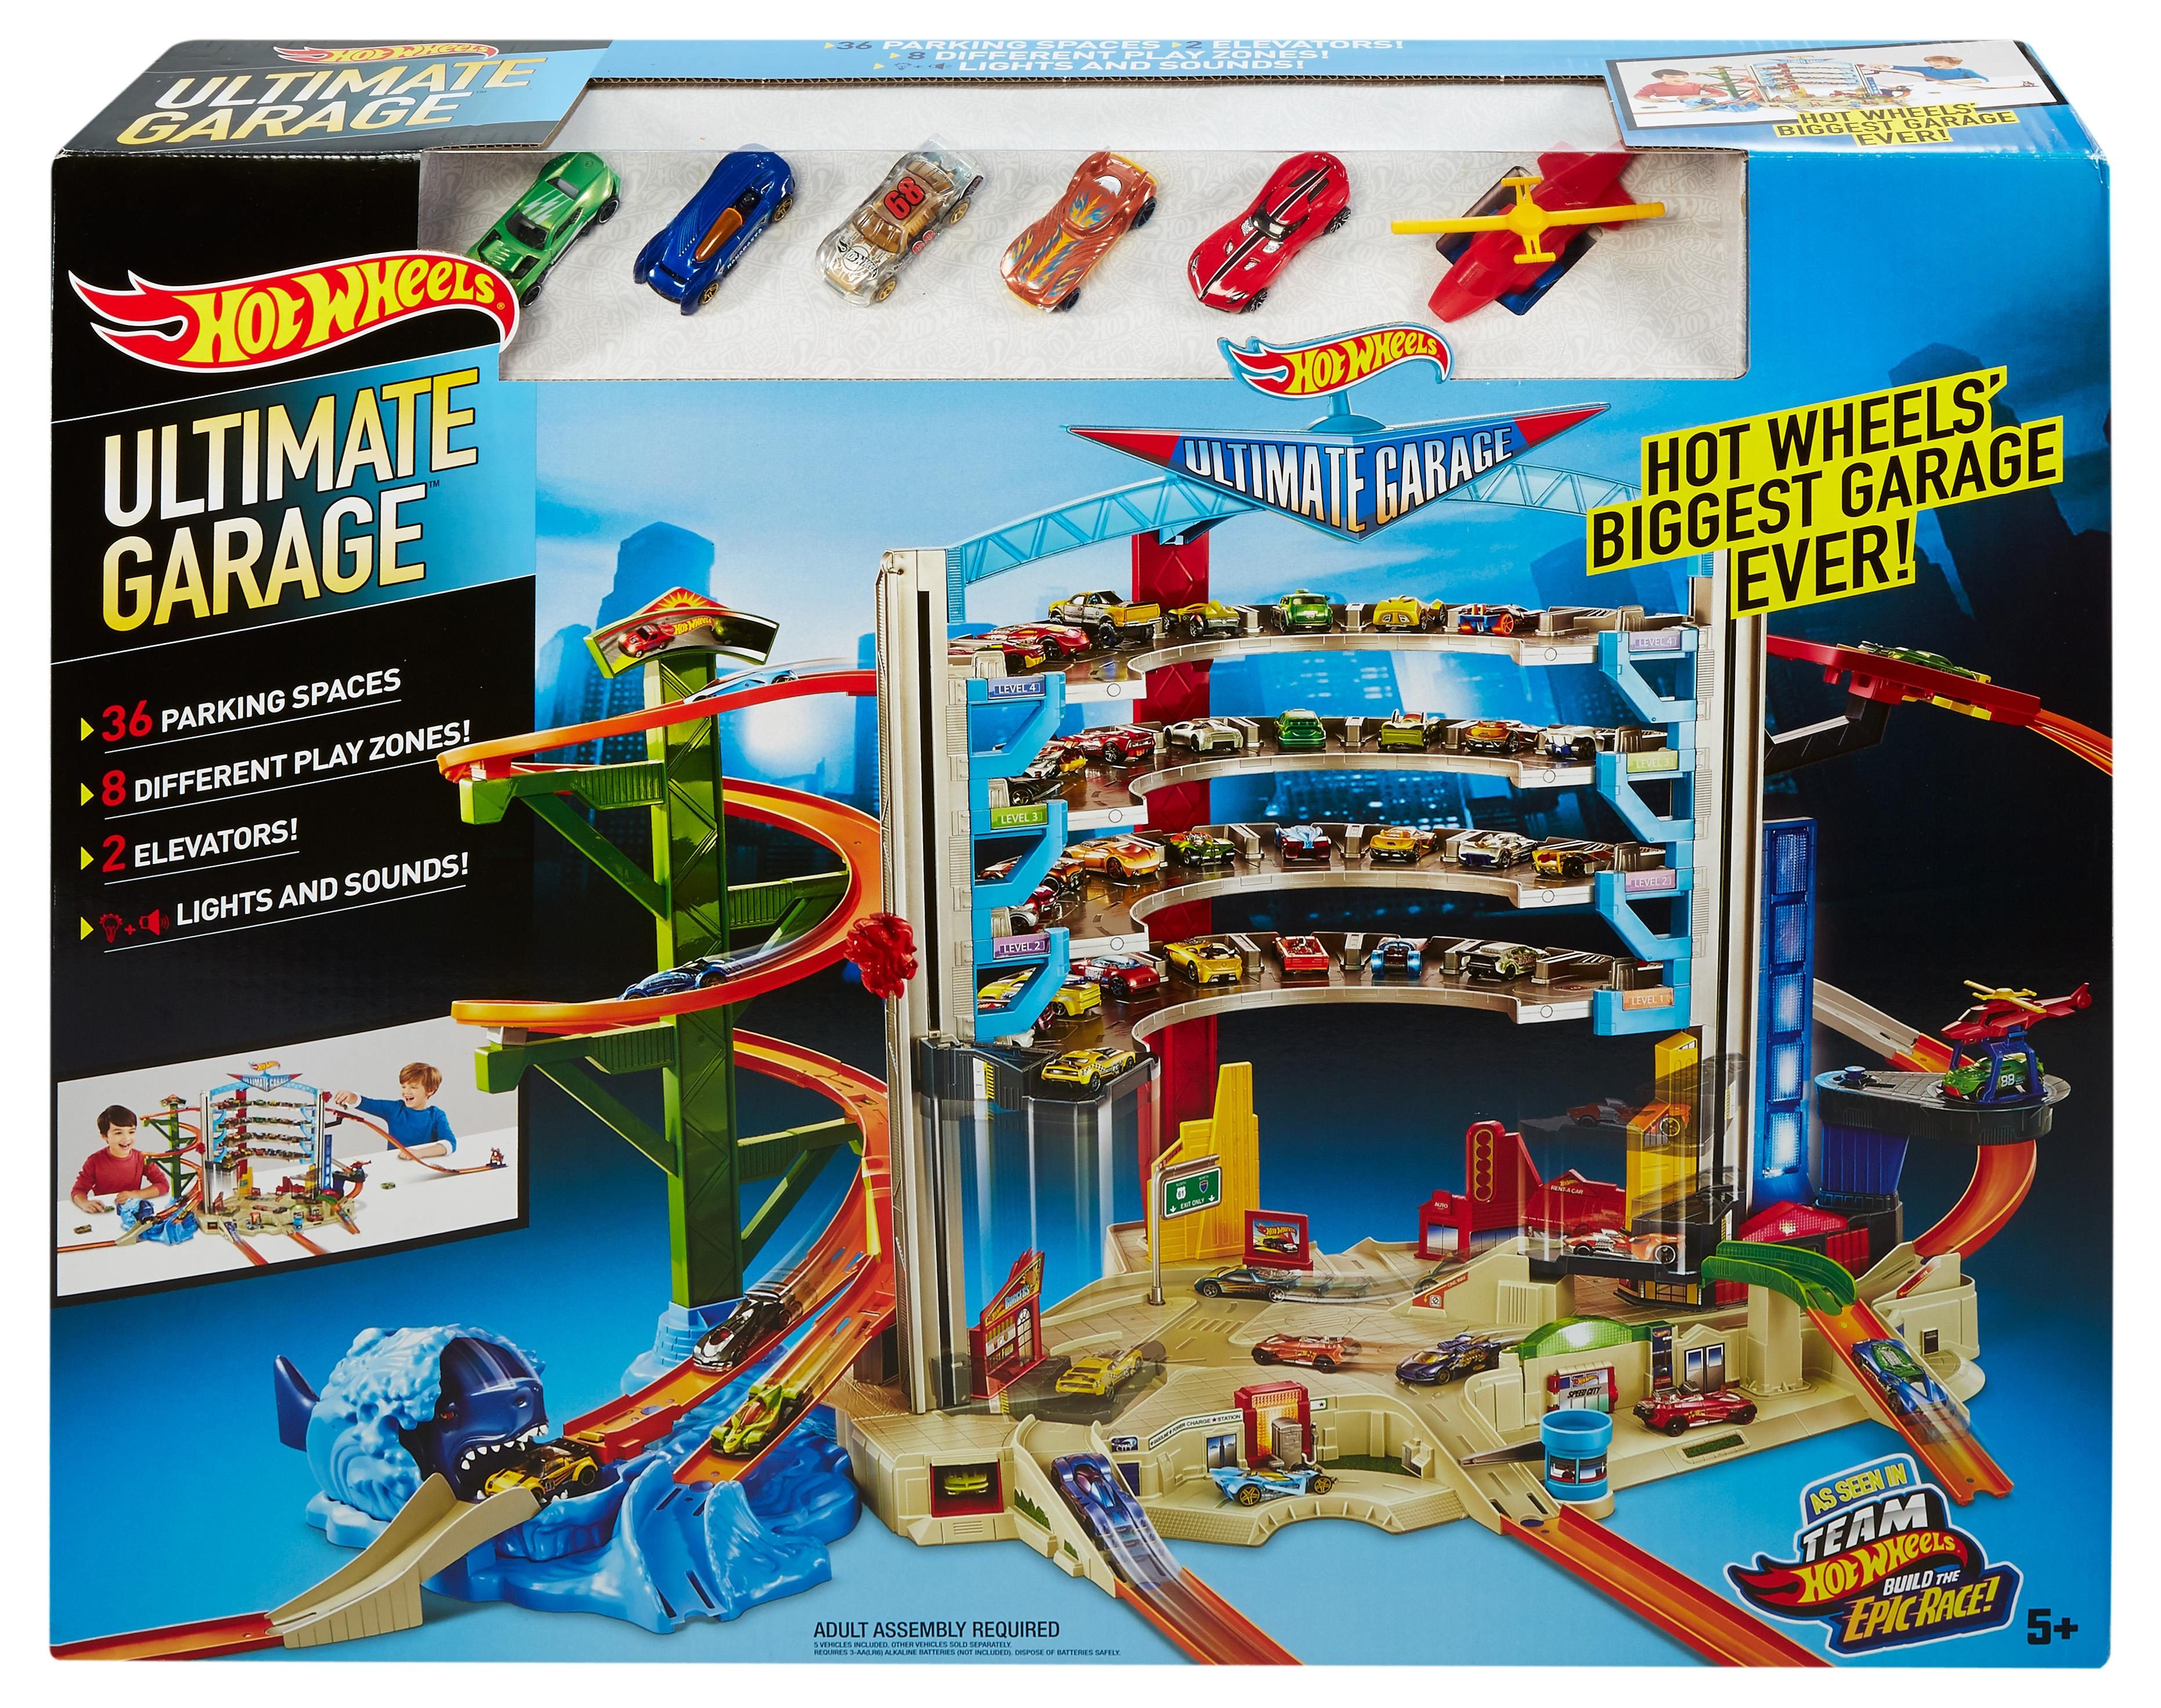 Amazon.com: Hot Wheels Ultimate Garage Playset: Toys & Games